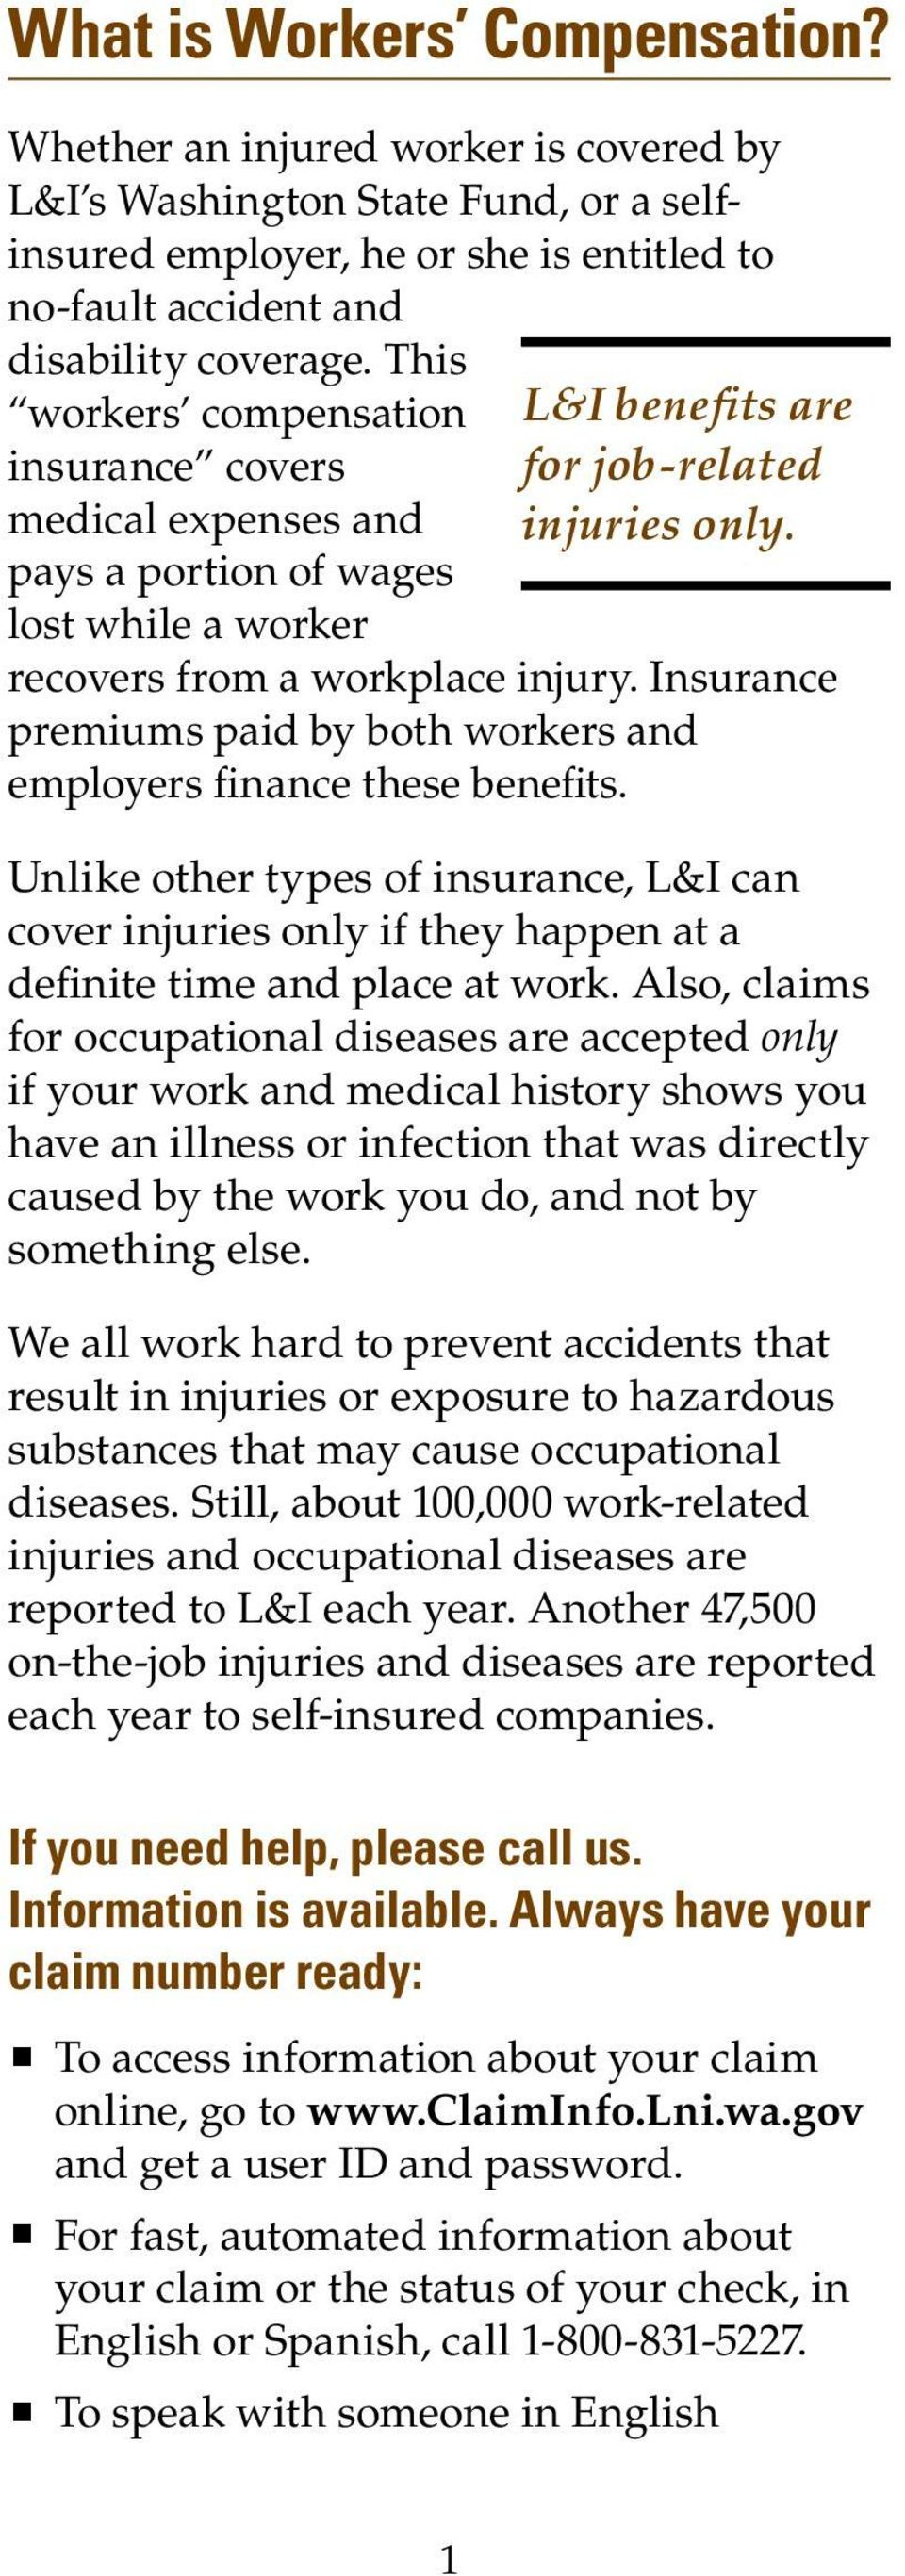 Insurance premiums paid by both workers and employers finance these benefits. Unlike other types of insurance, L&I can cover injuries only if they happen at a definite time and place at work.